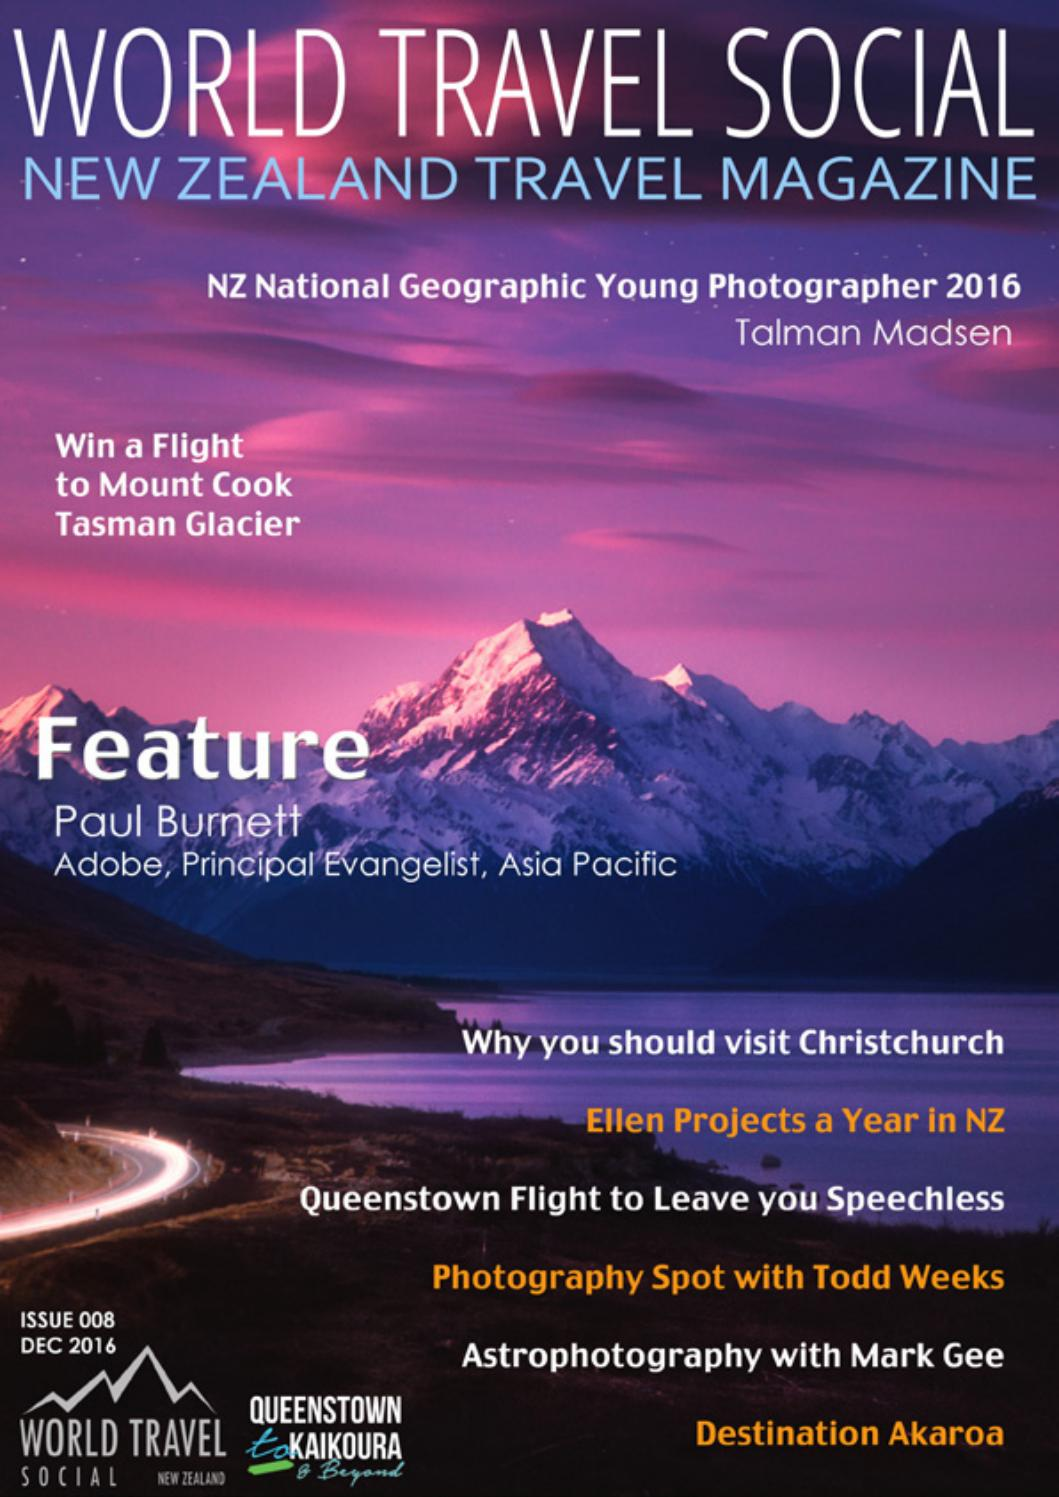 Travel Magazine New Zealand Featuring Queenstown To